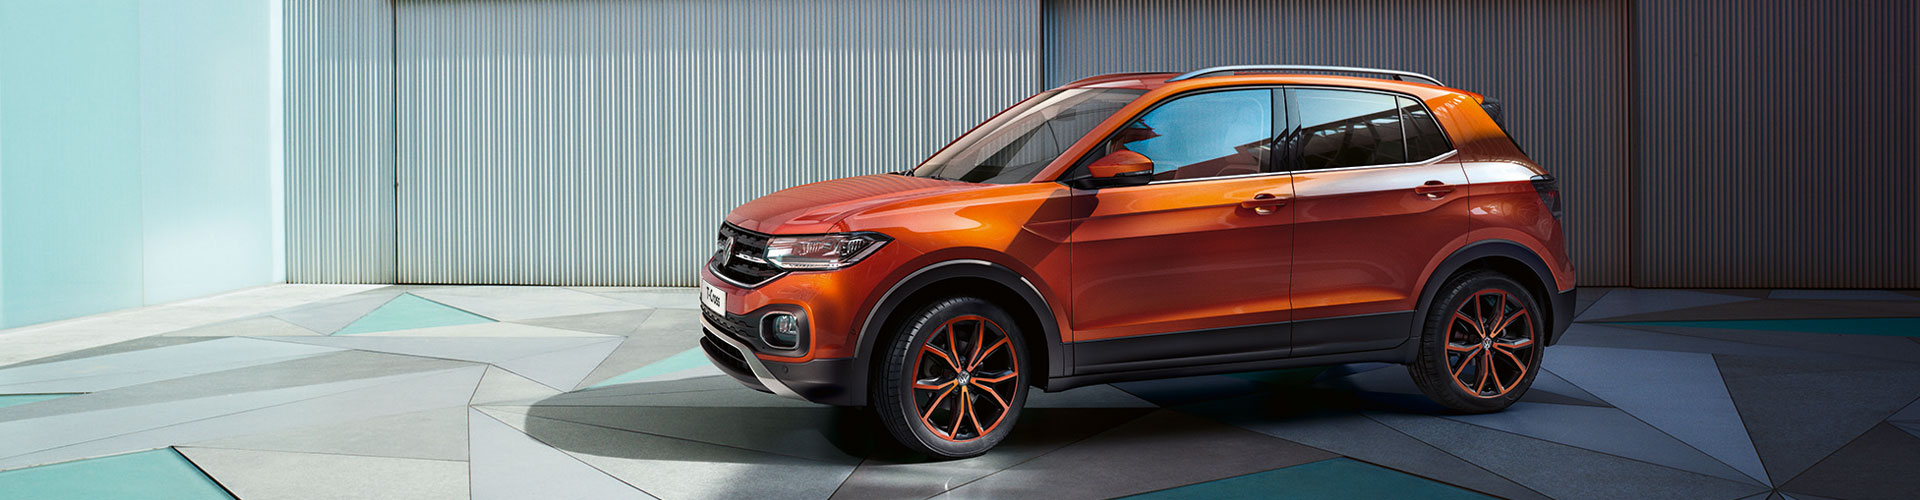 Image of Volkswagen T-Cross